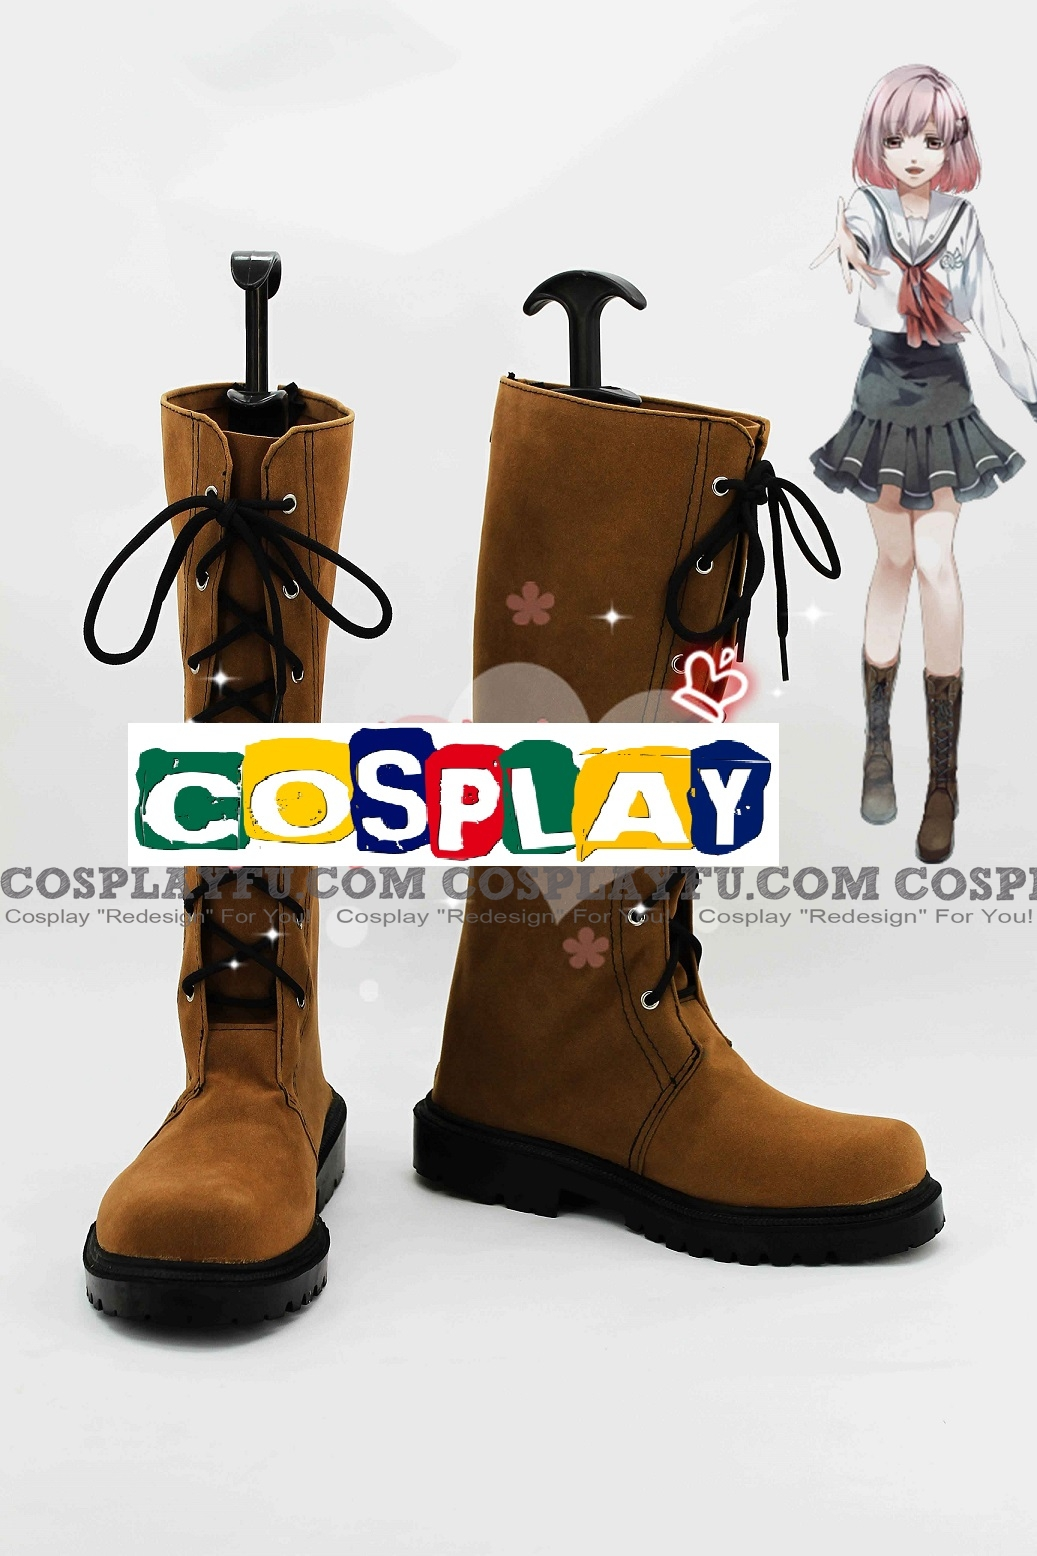 Koharu Shoes (1683) from NORN9